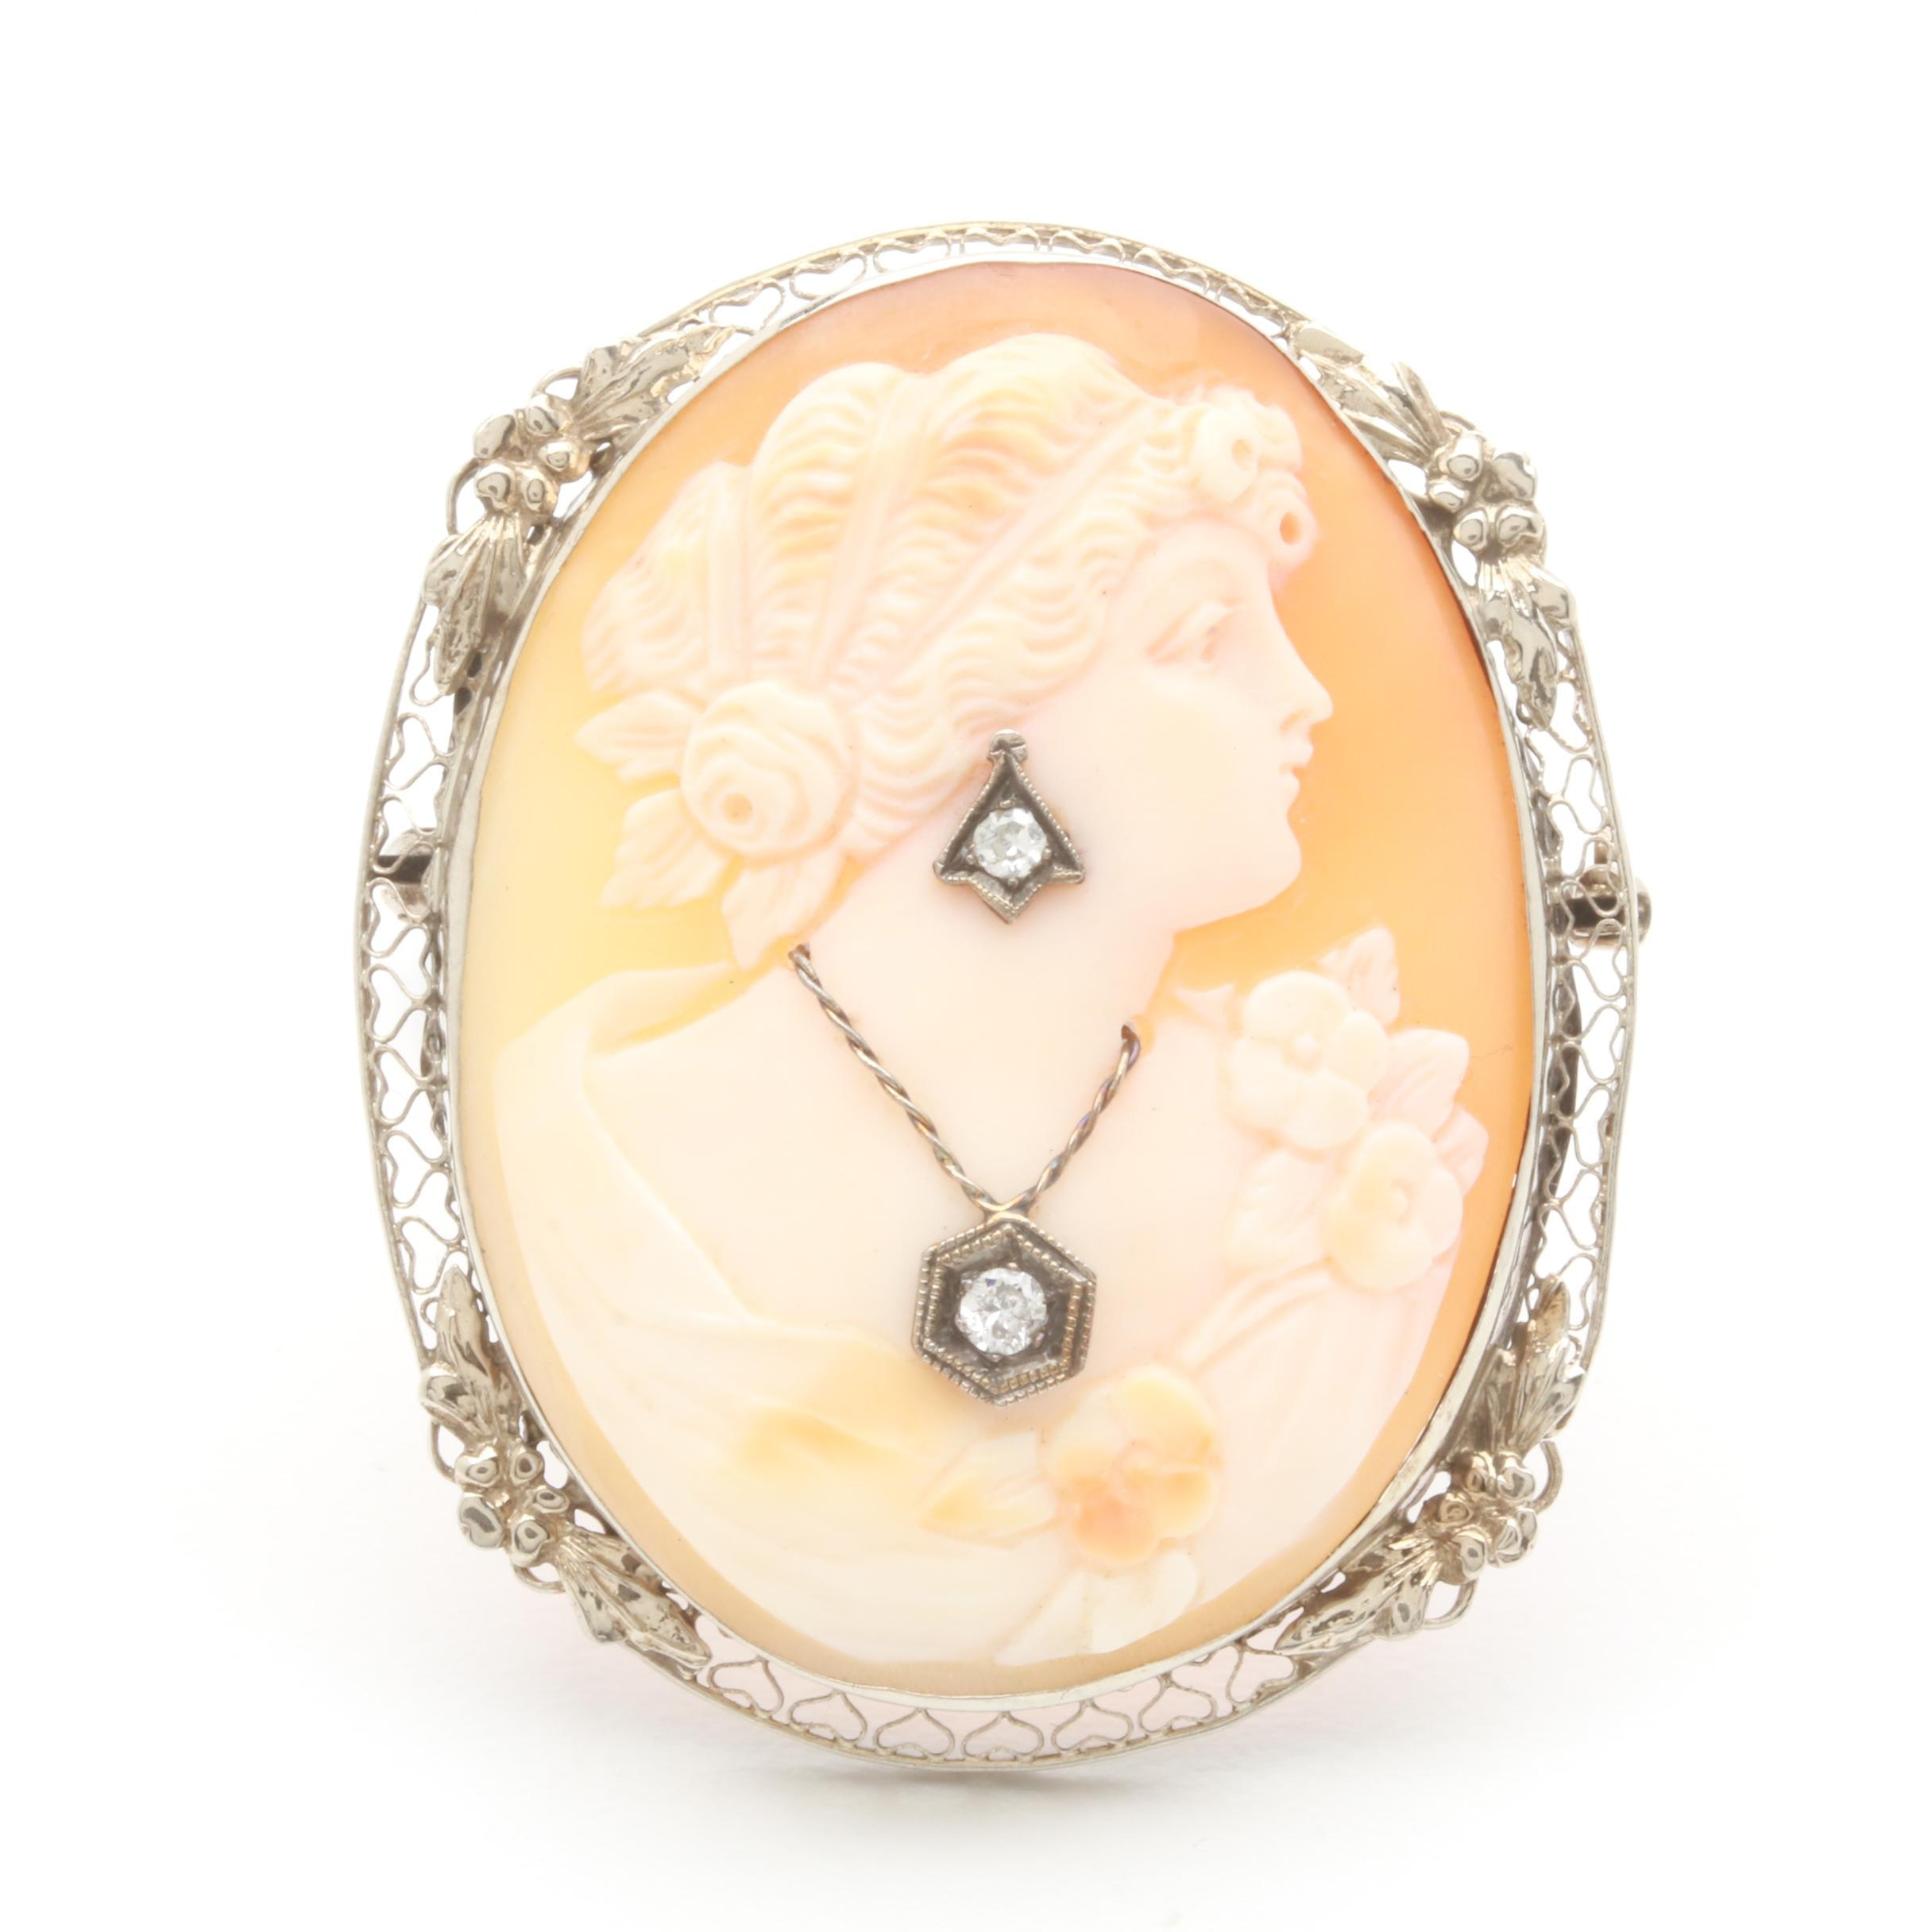 Circa 1930s 14K White Gold Shell and Diamond Habillé Cameo Brooch